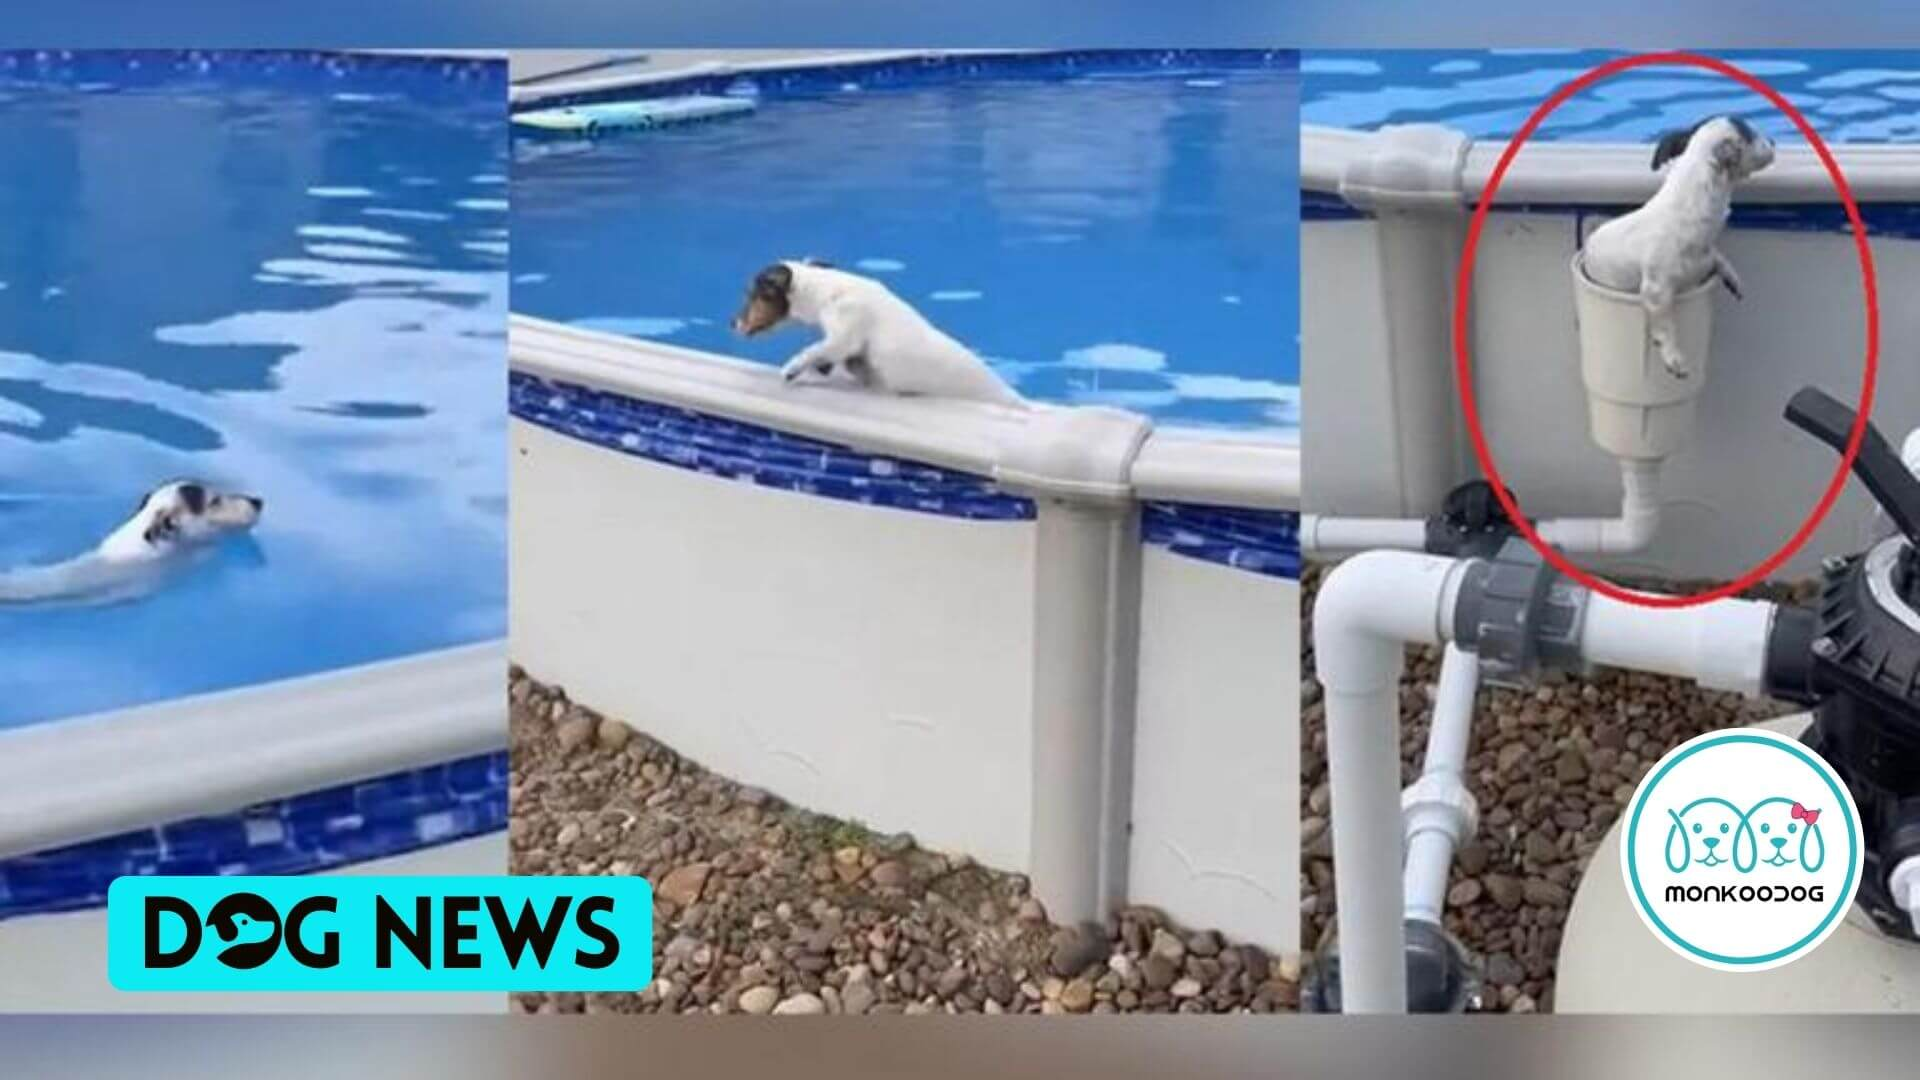 WATCH - The Paw-Dorable Video Of Dog Swimming in the Pool Takes An Unbelievable 'Secret Exit'; Going Viral by Monkoodog